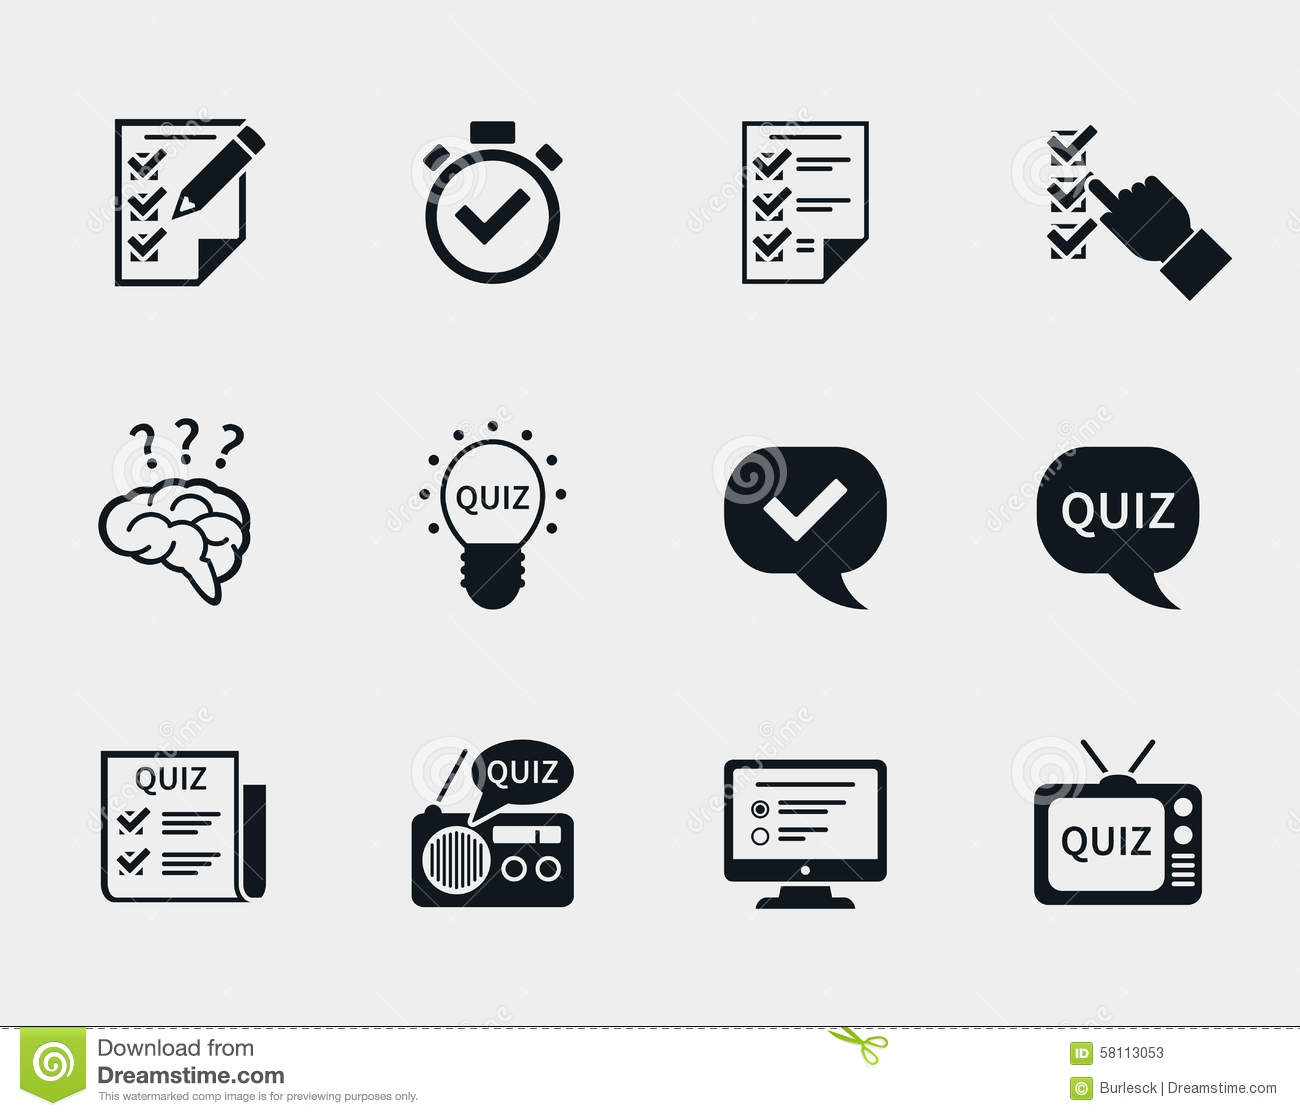 Quiz icon set stock vector. Illustration of education